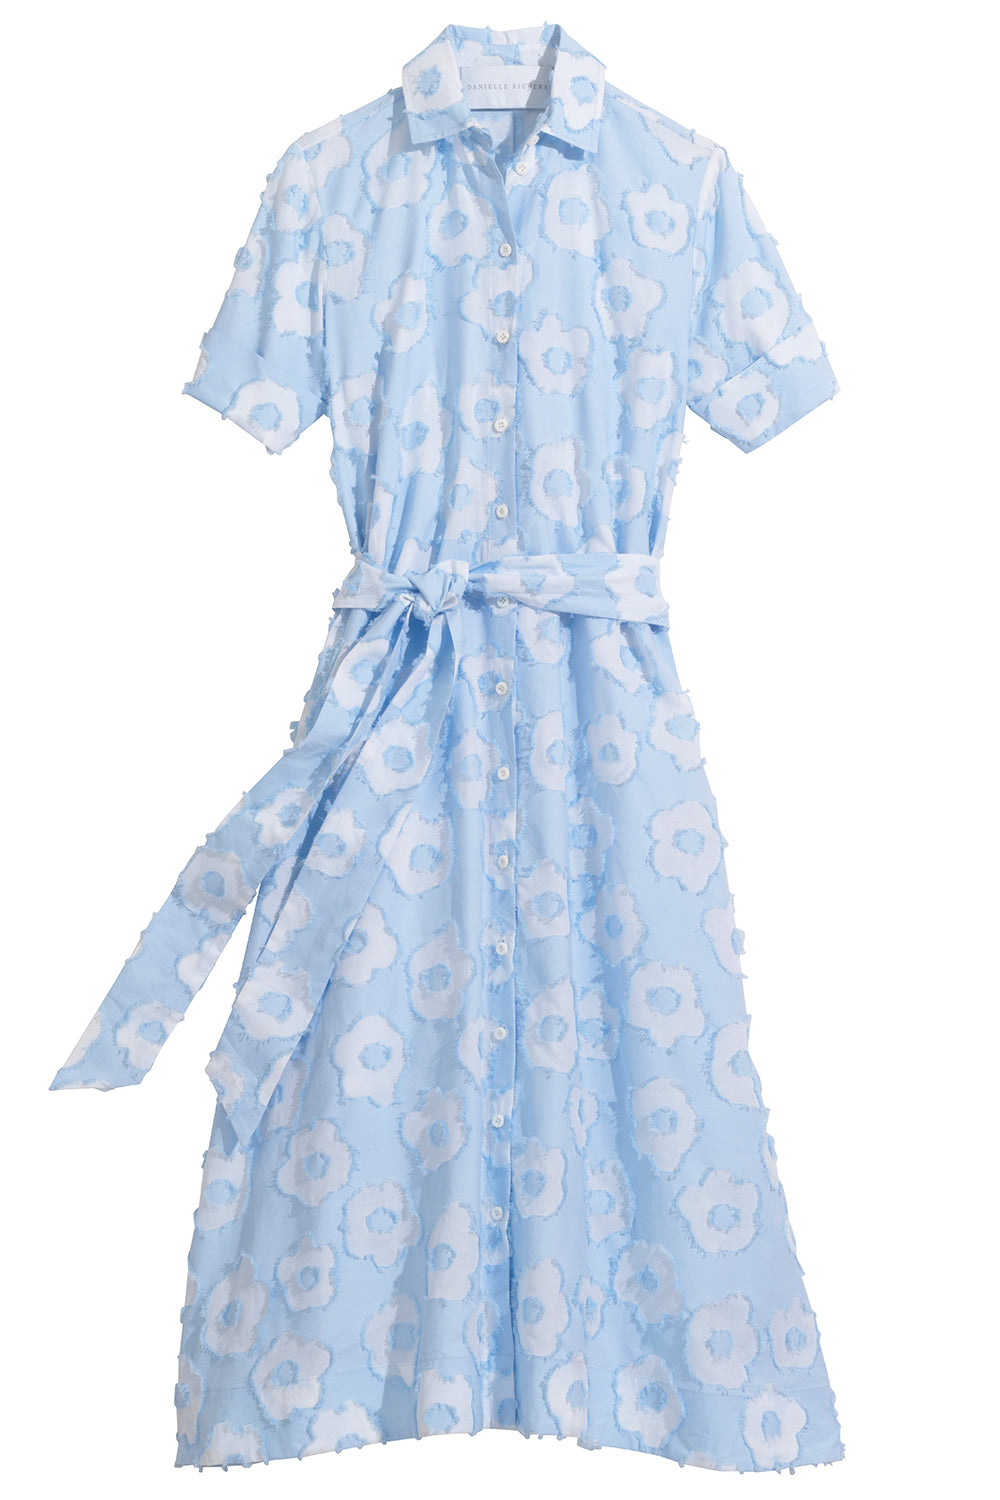 Amara Dress in Sky Blue & White